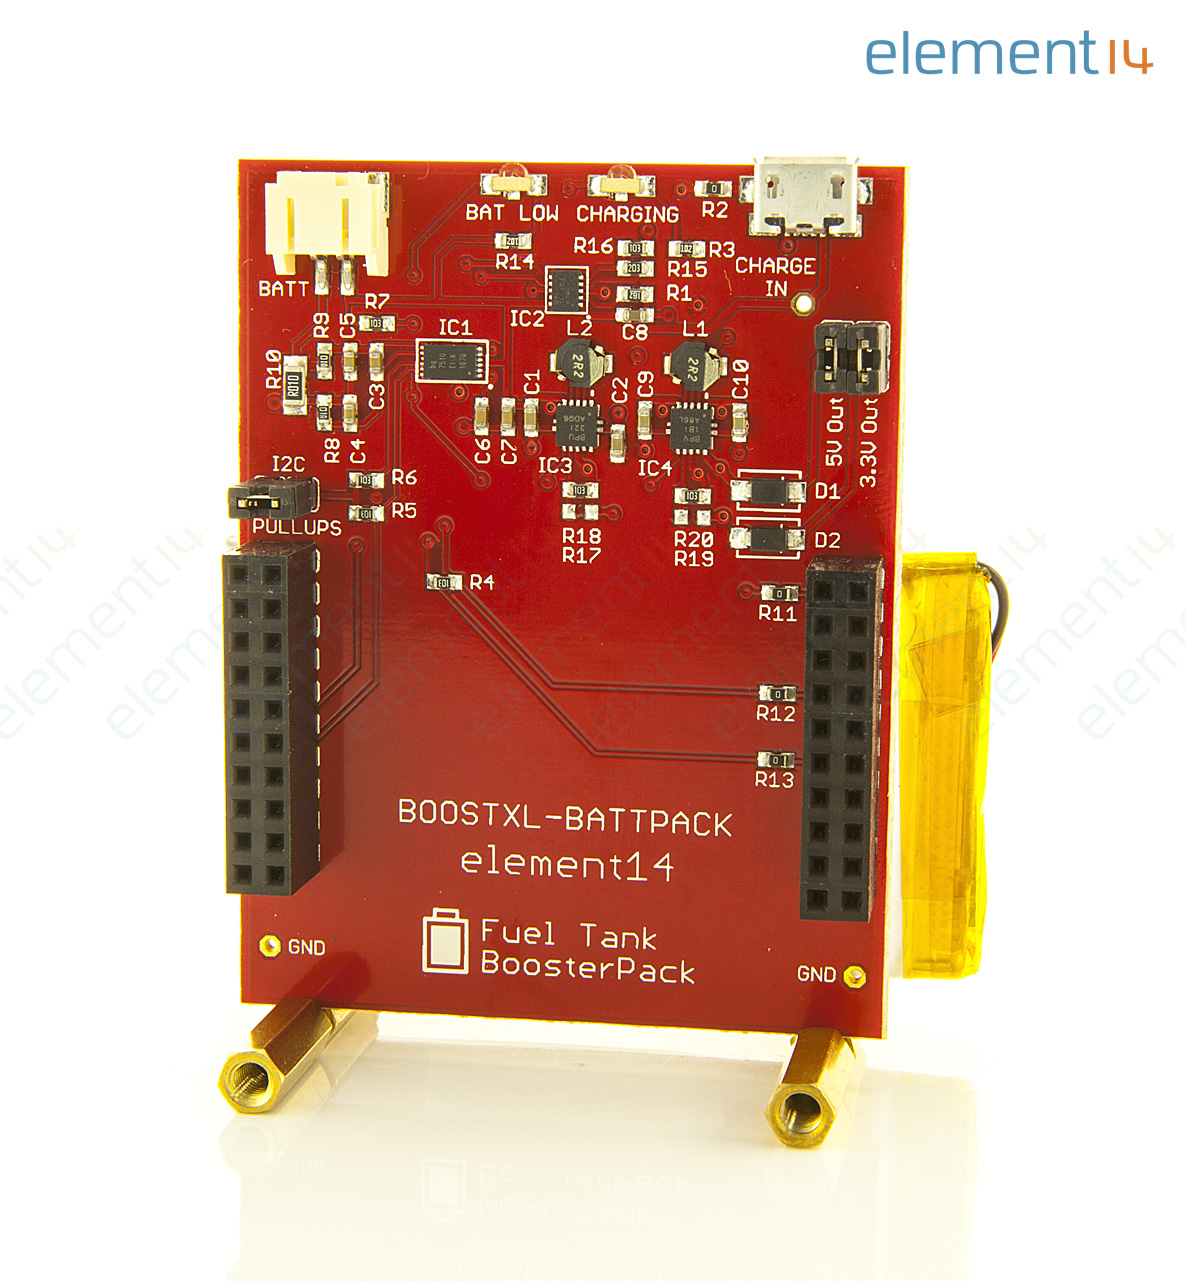 Boostxl Battpack Element14 Li Po Battery Booster Pack For Launchpad Electronics Learning Circuits Webonly Products Technology Add To Compare